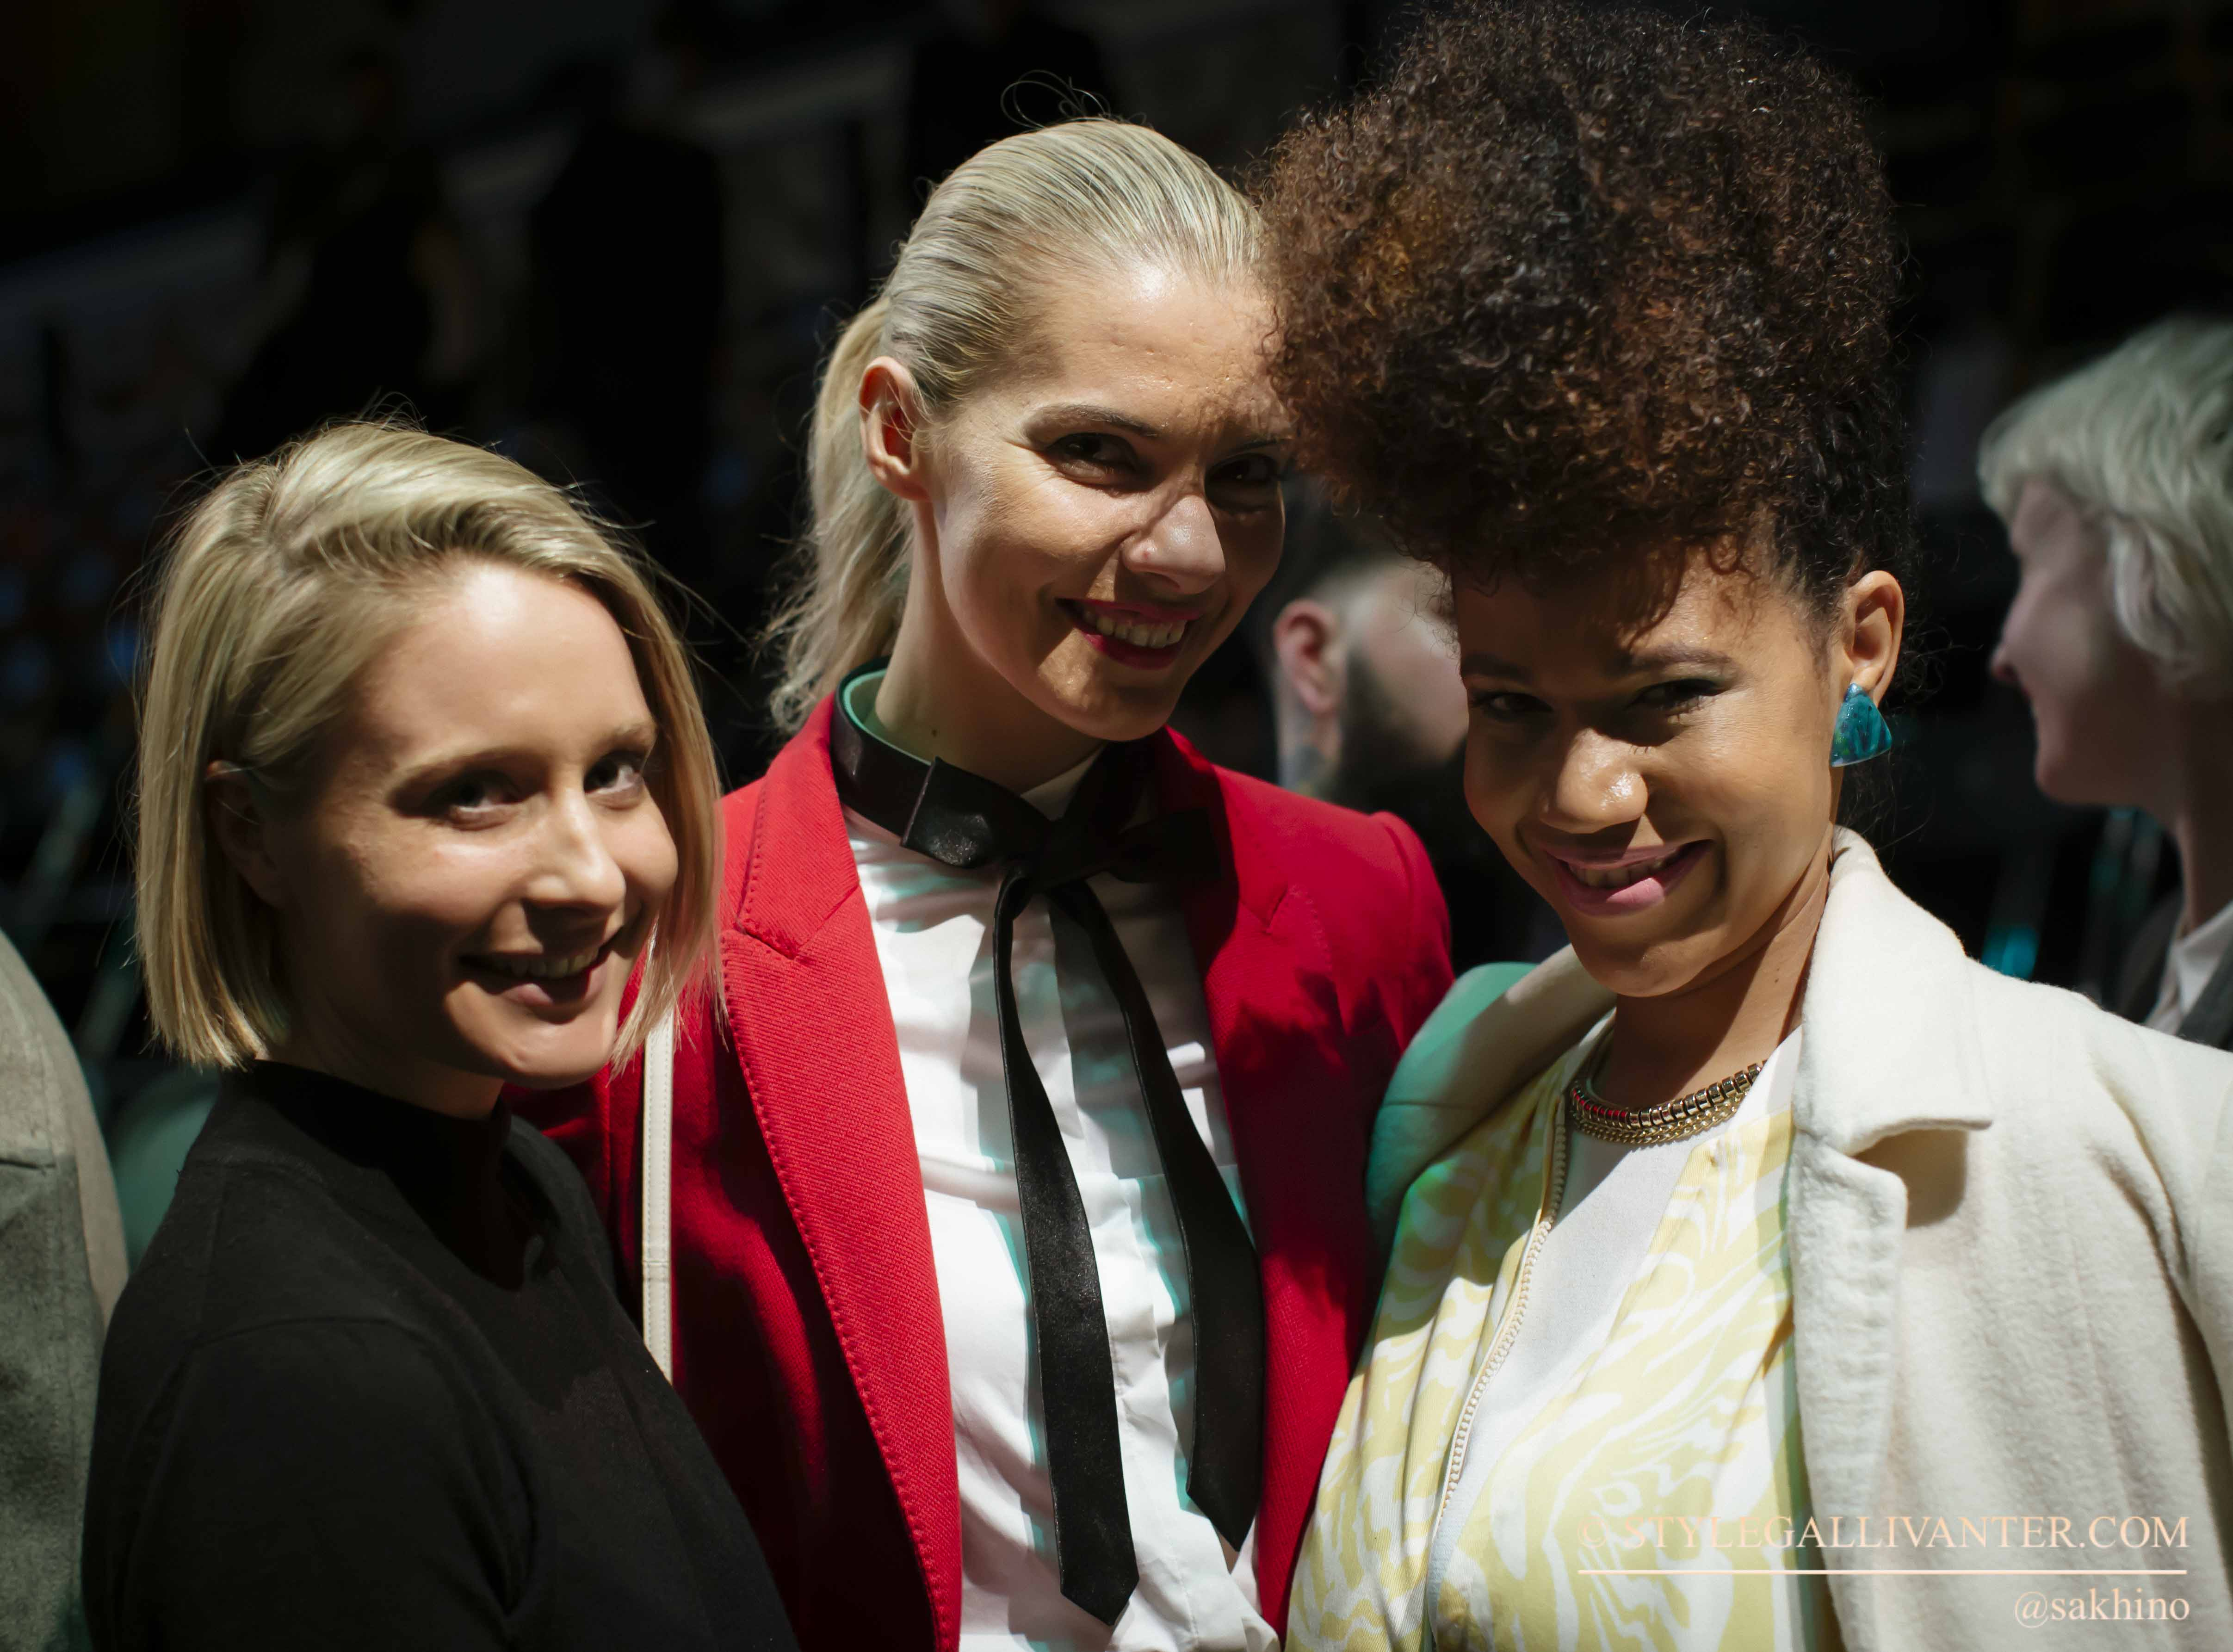 copyright-stylegallivanter.com_mr-runway-show-msfw-2015-7